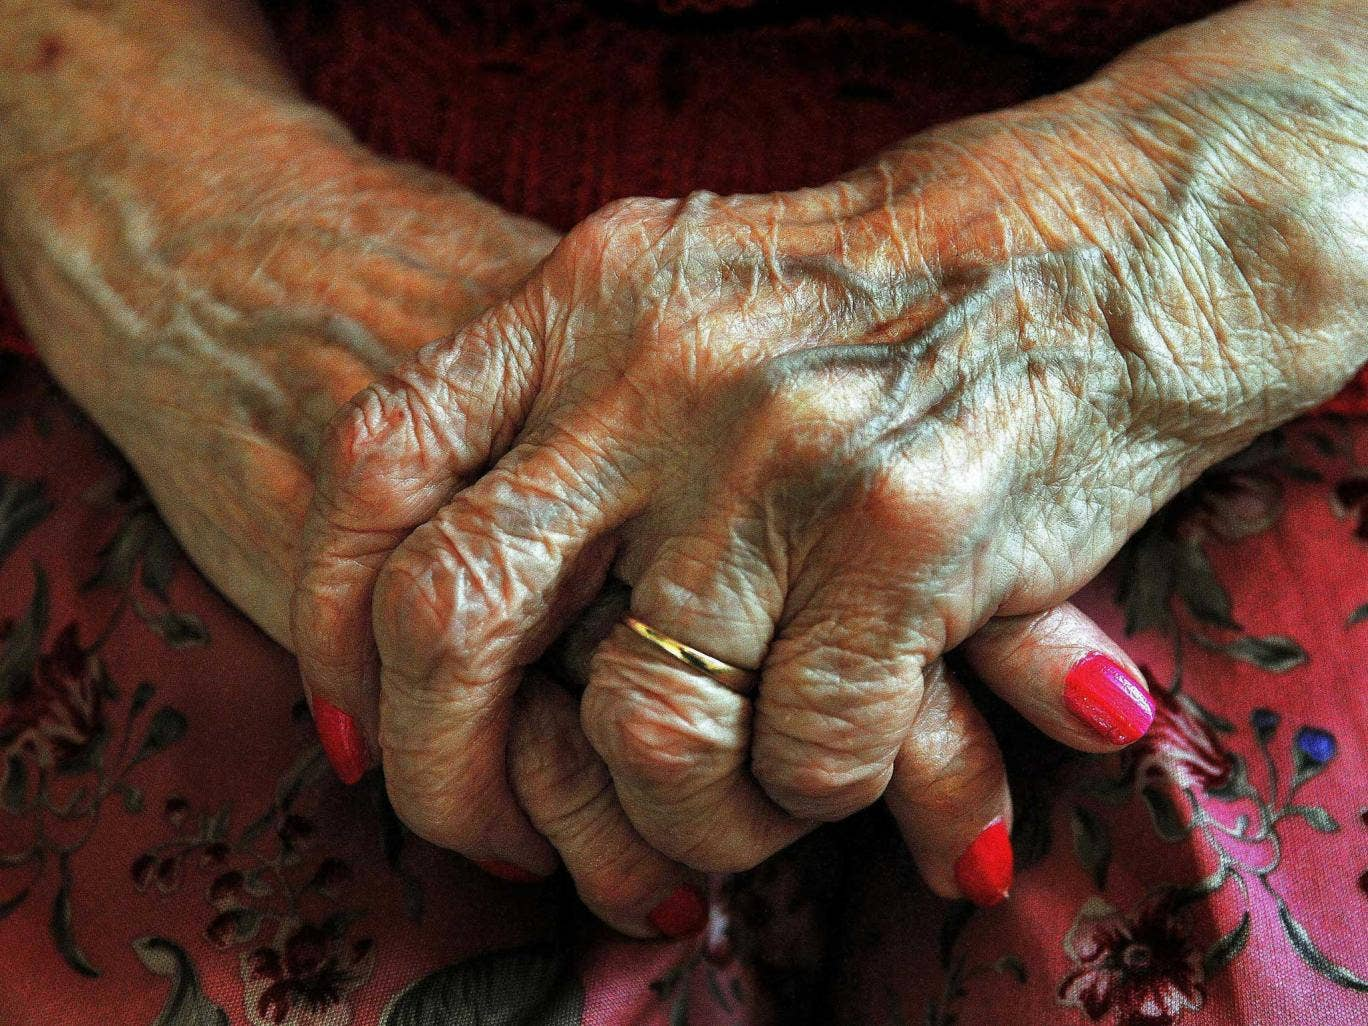 There has been a five-fold increase in the number of centenarians over the last three decades